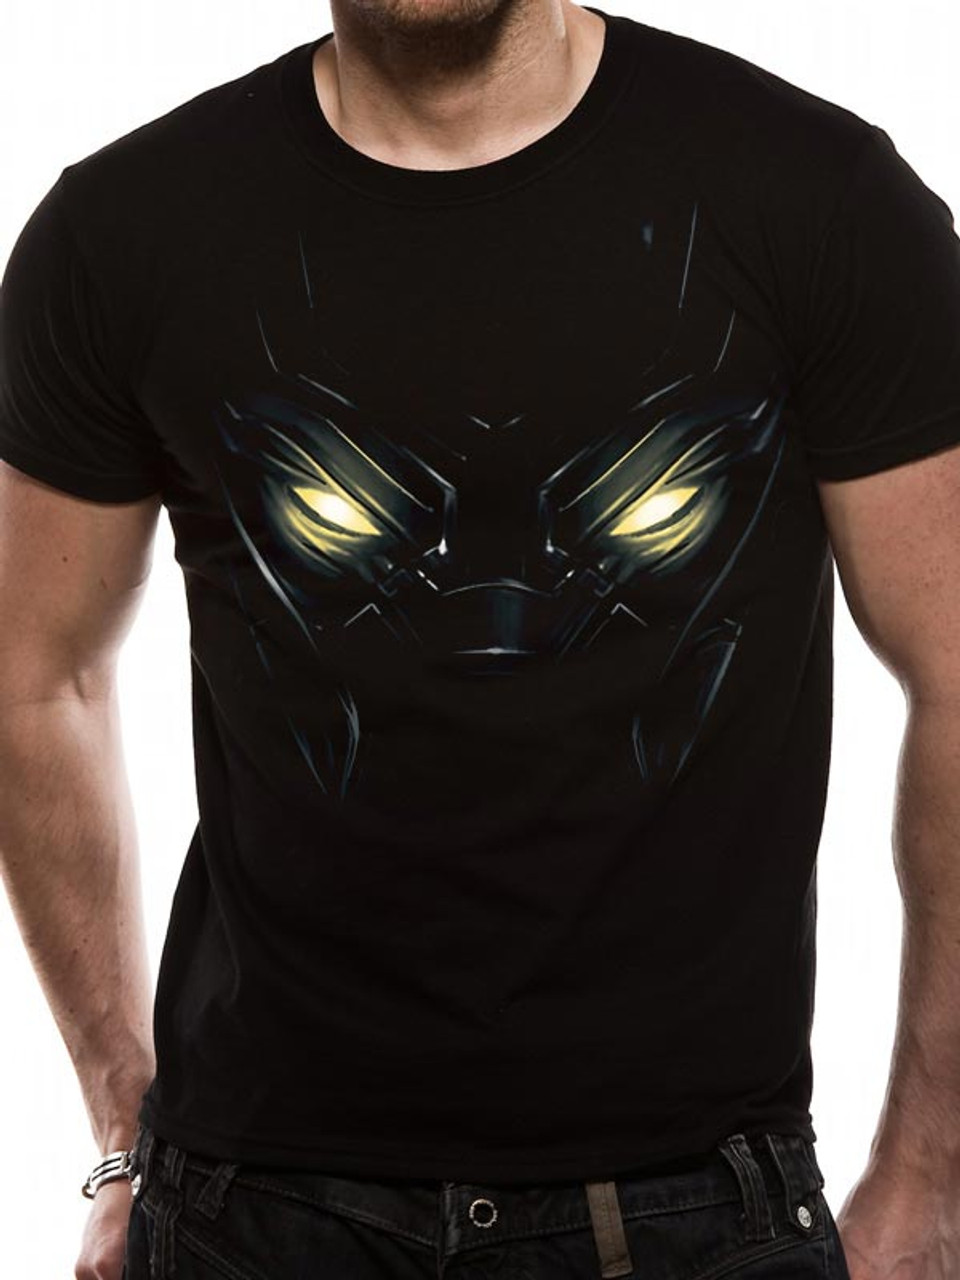 f8e757968e Black Panther Eyes Official Marvel Black Unisex T-Shirt. Buy Marvel T-shirts  Now at Starstills.com